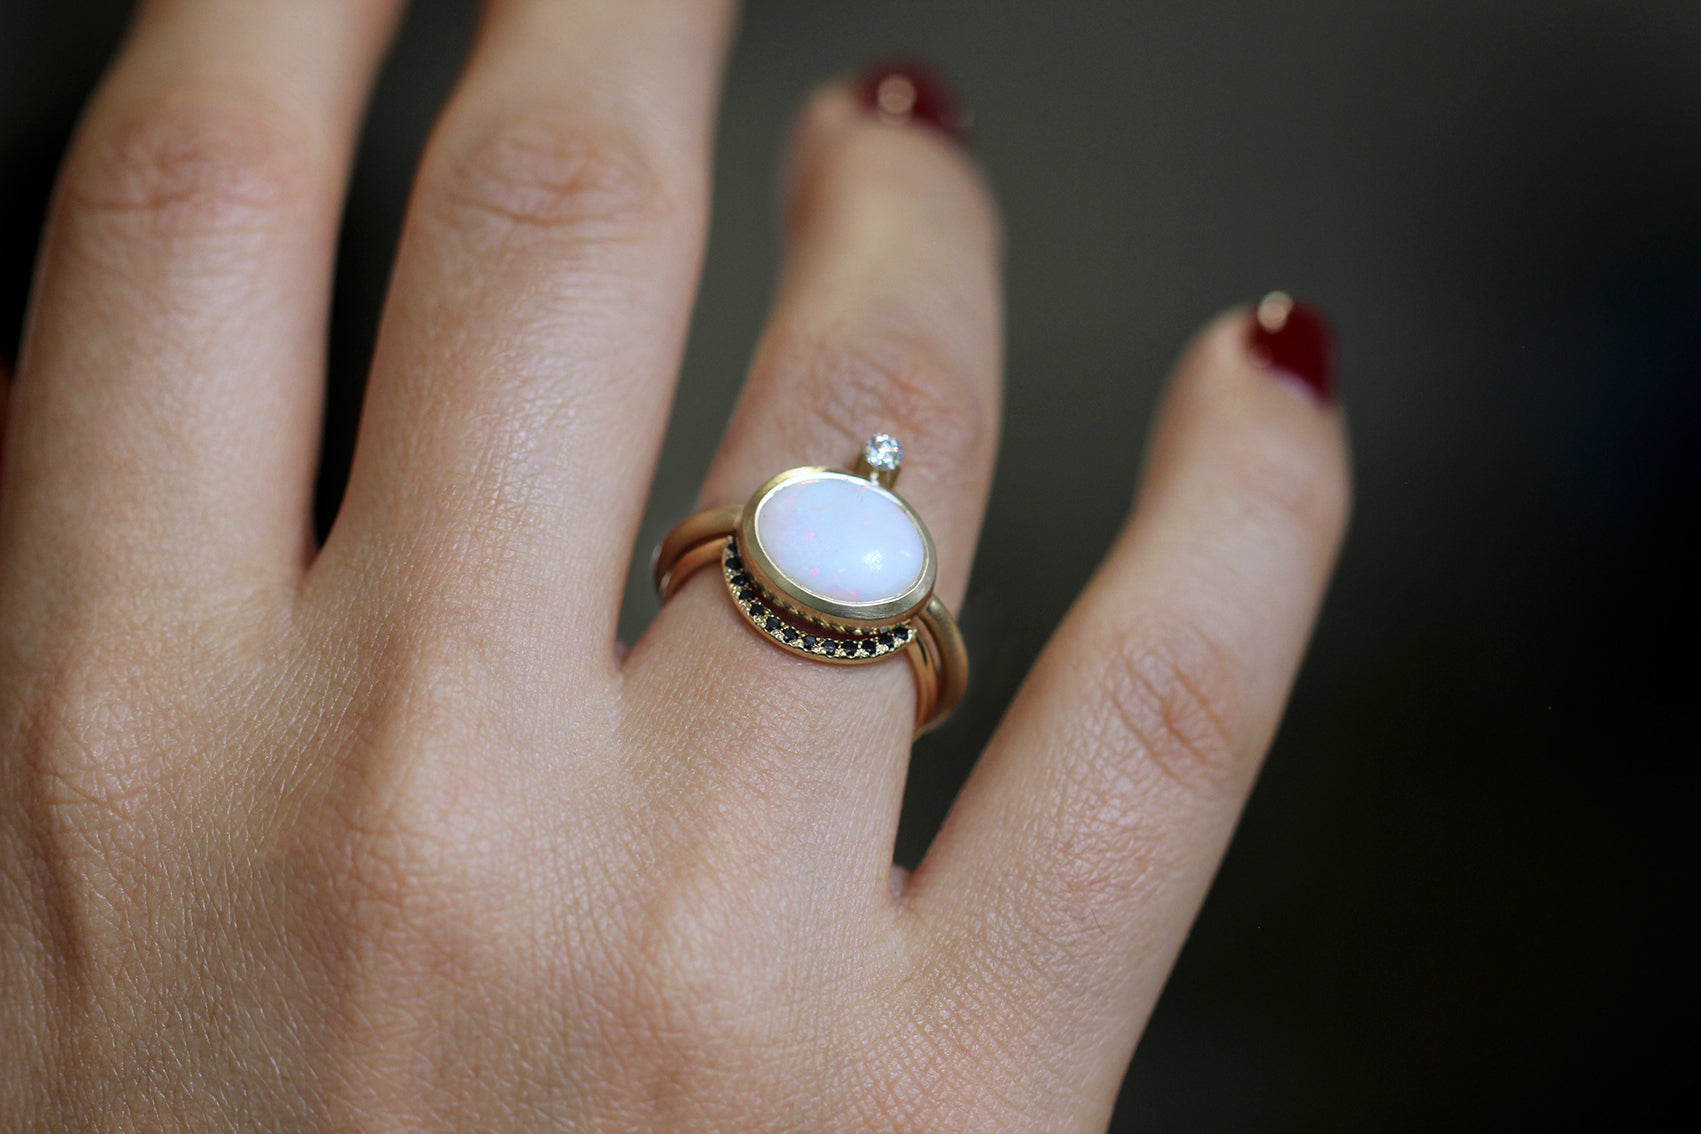 Gold Ring Set With Opal - Opal Diamond Engagement Ring